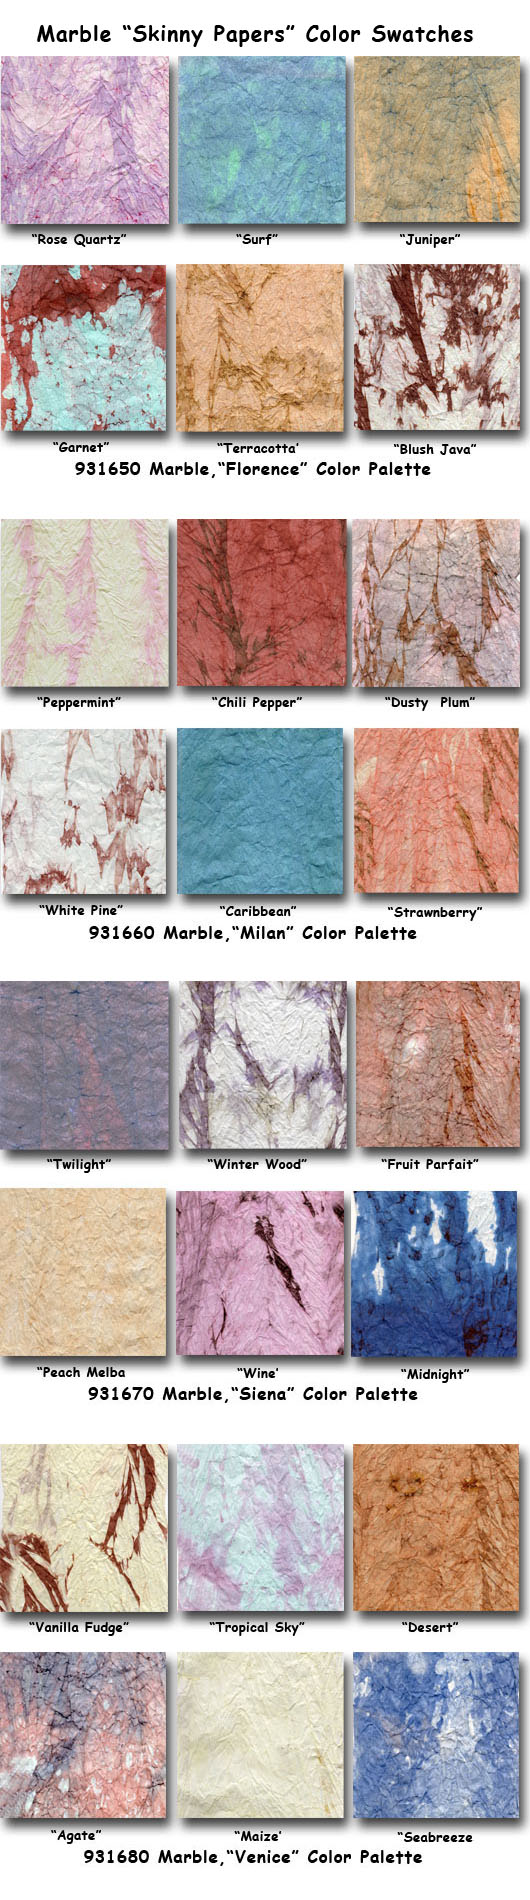 marble-skinny-papers-color-swatch-2.jpg